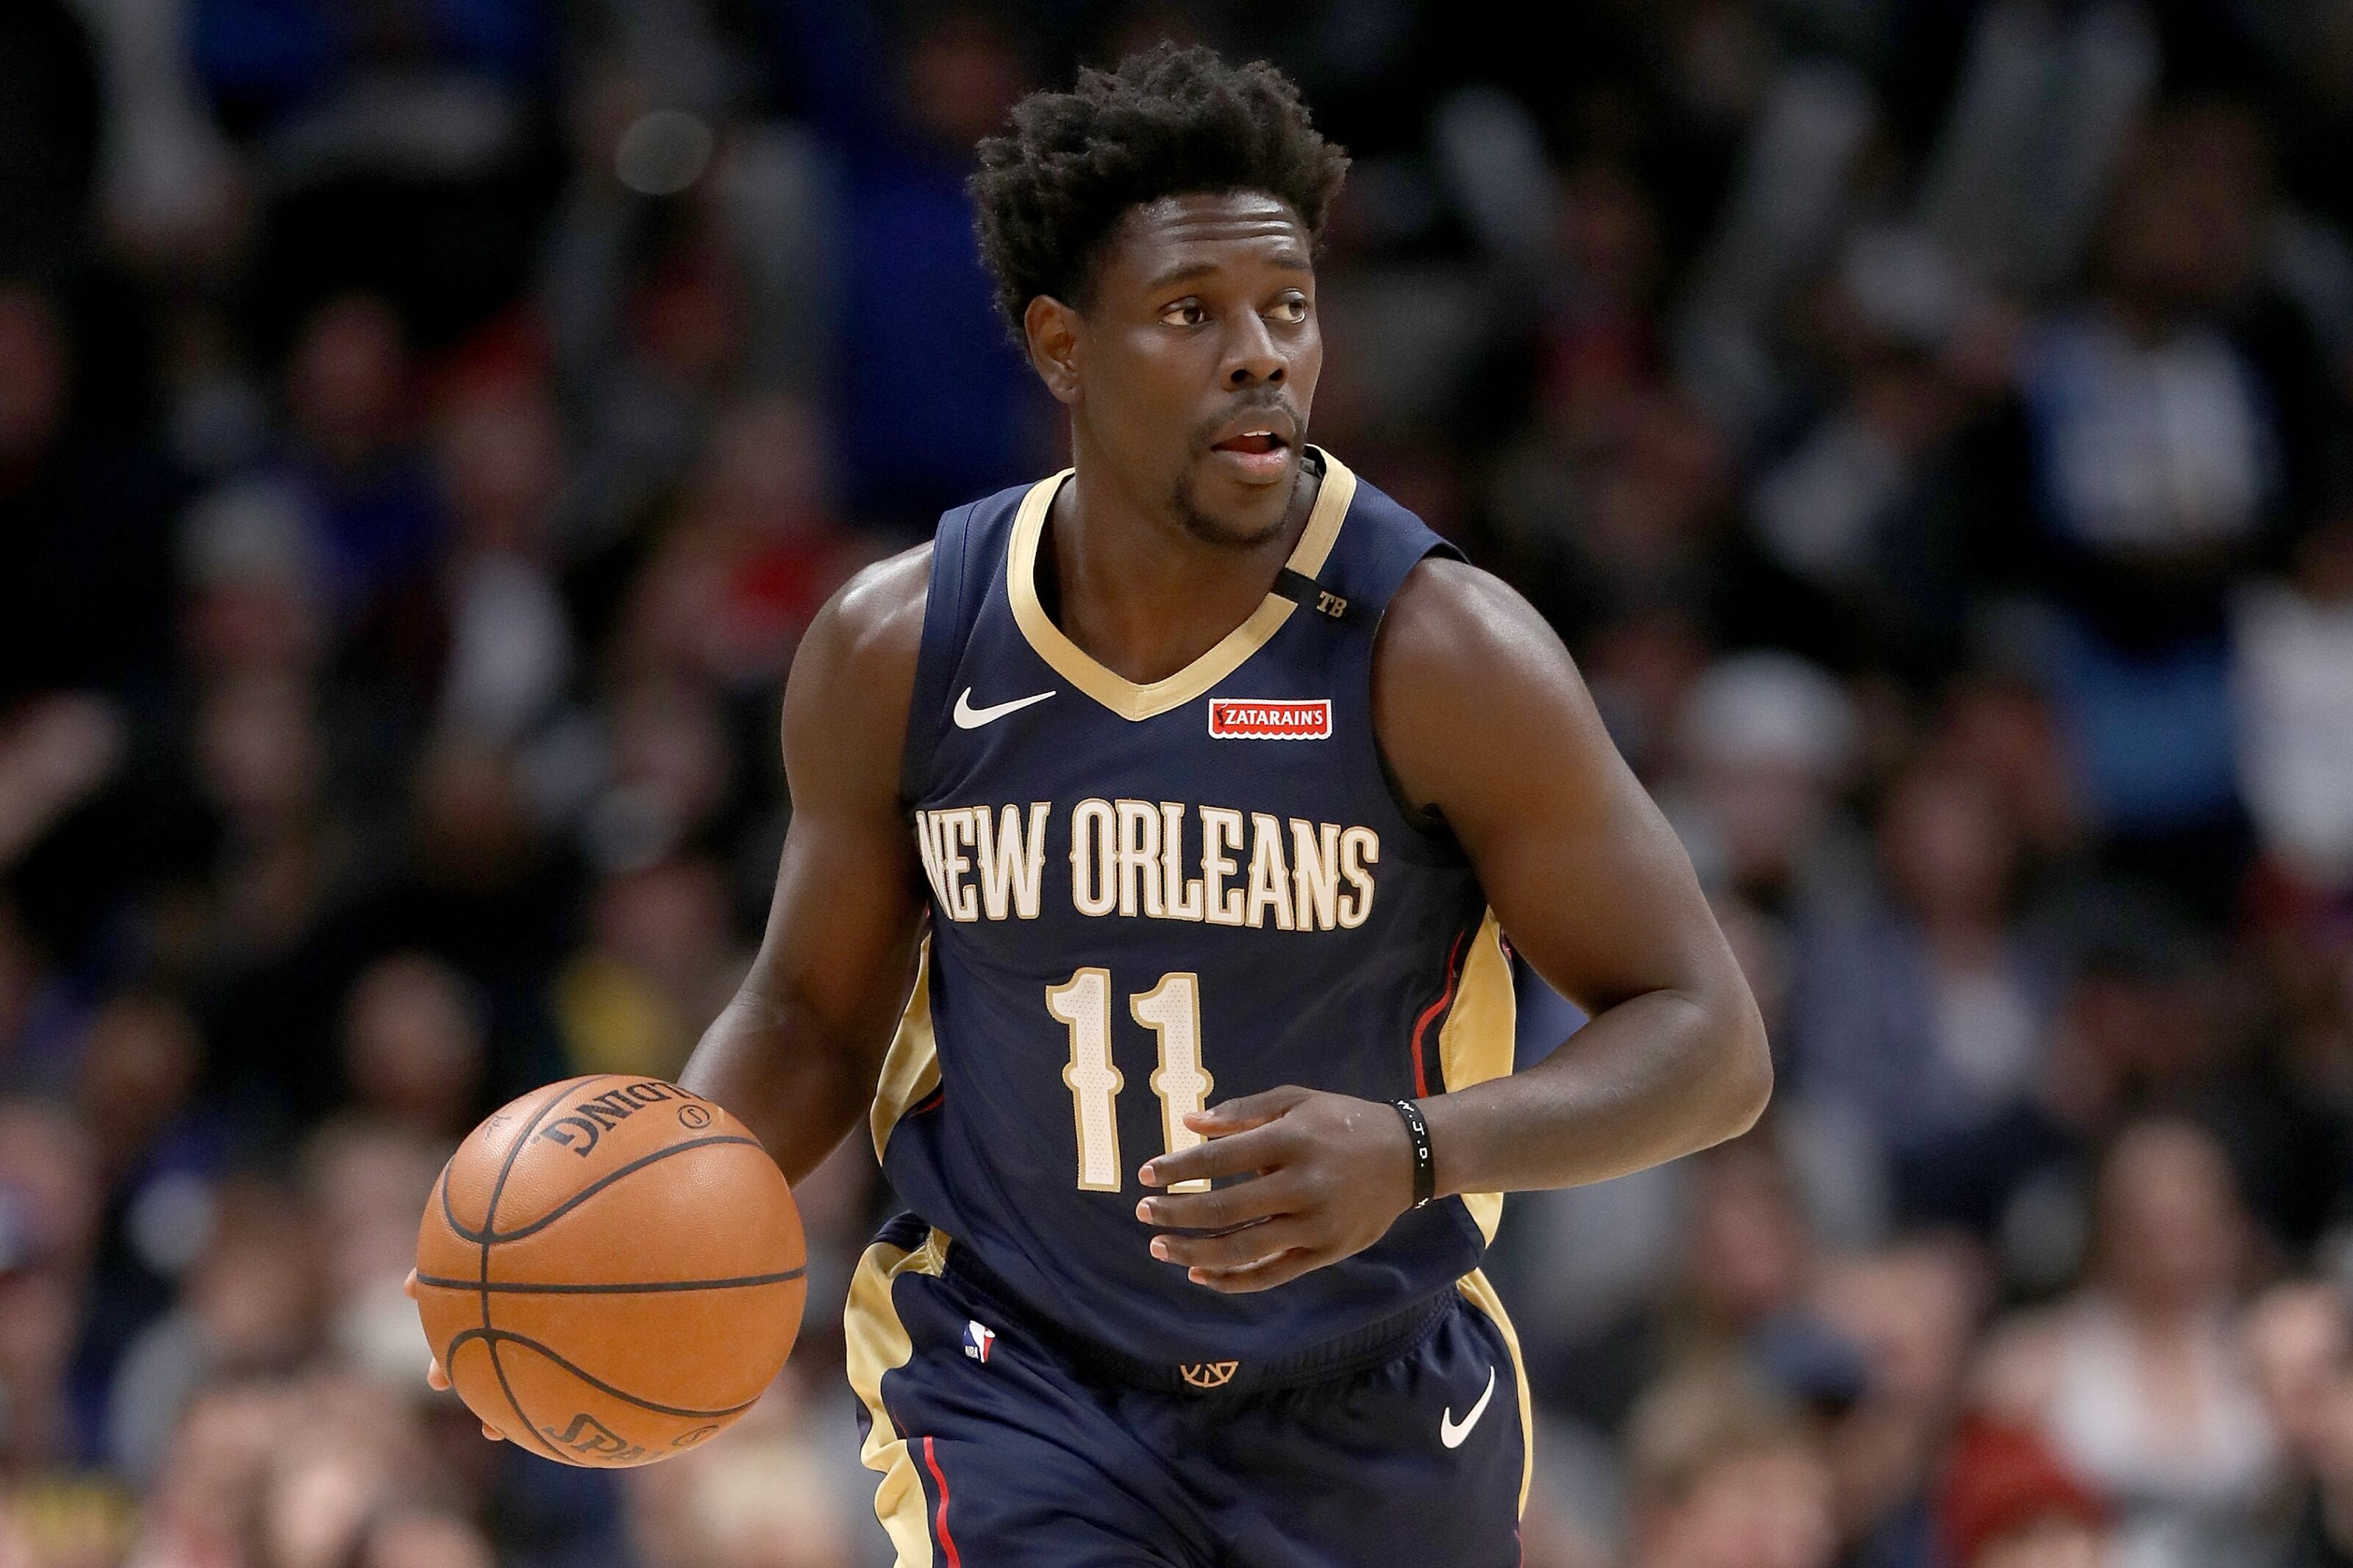 New Orleans Pelicans: Jrue Holiday is the most underrated